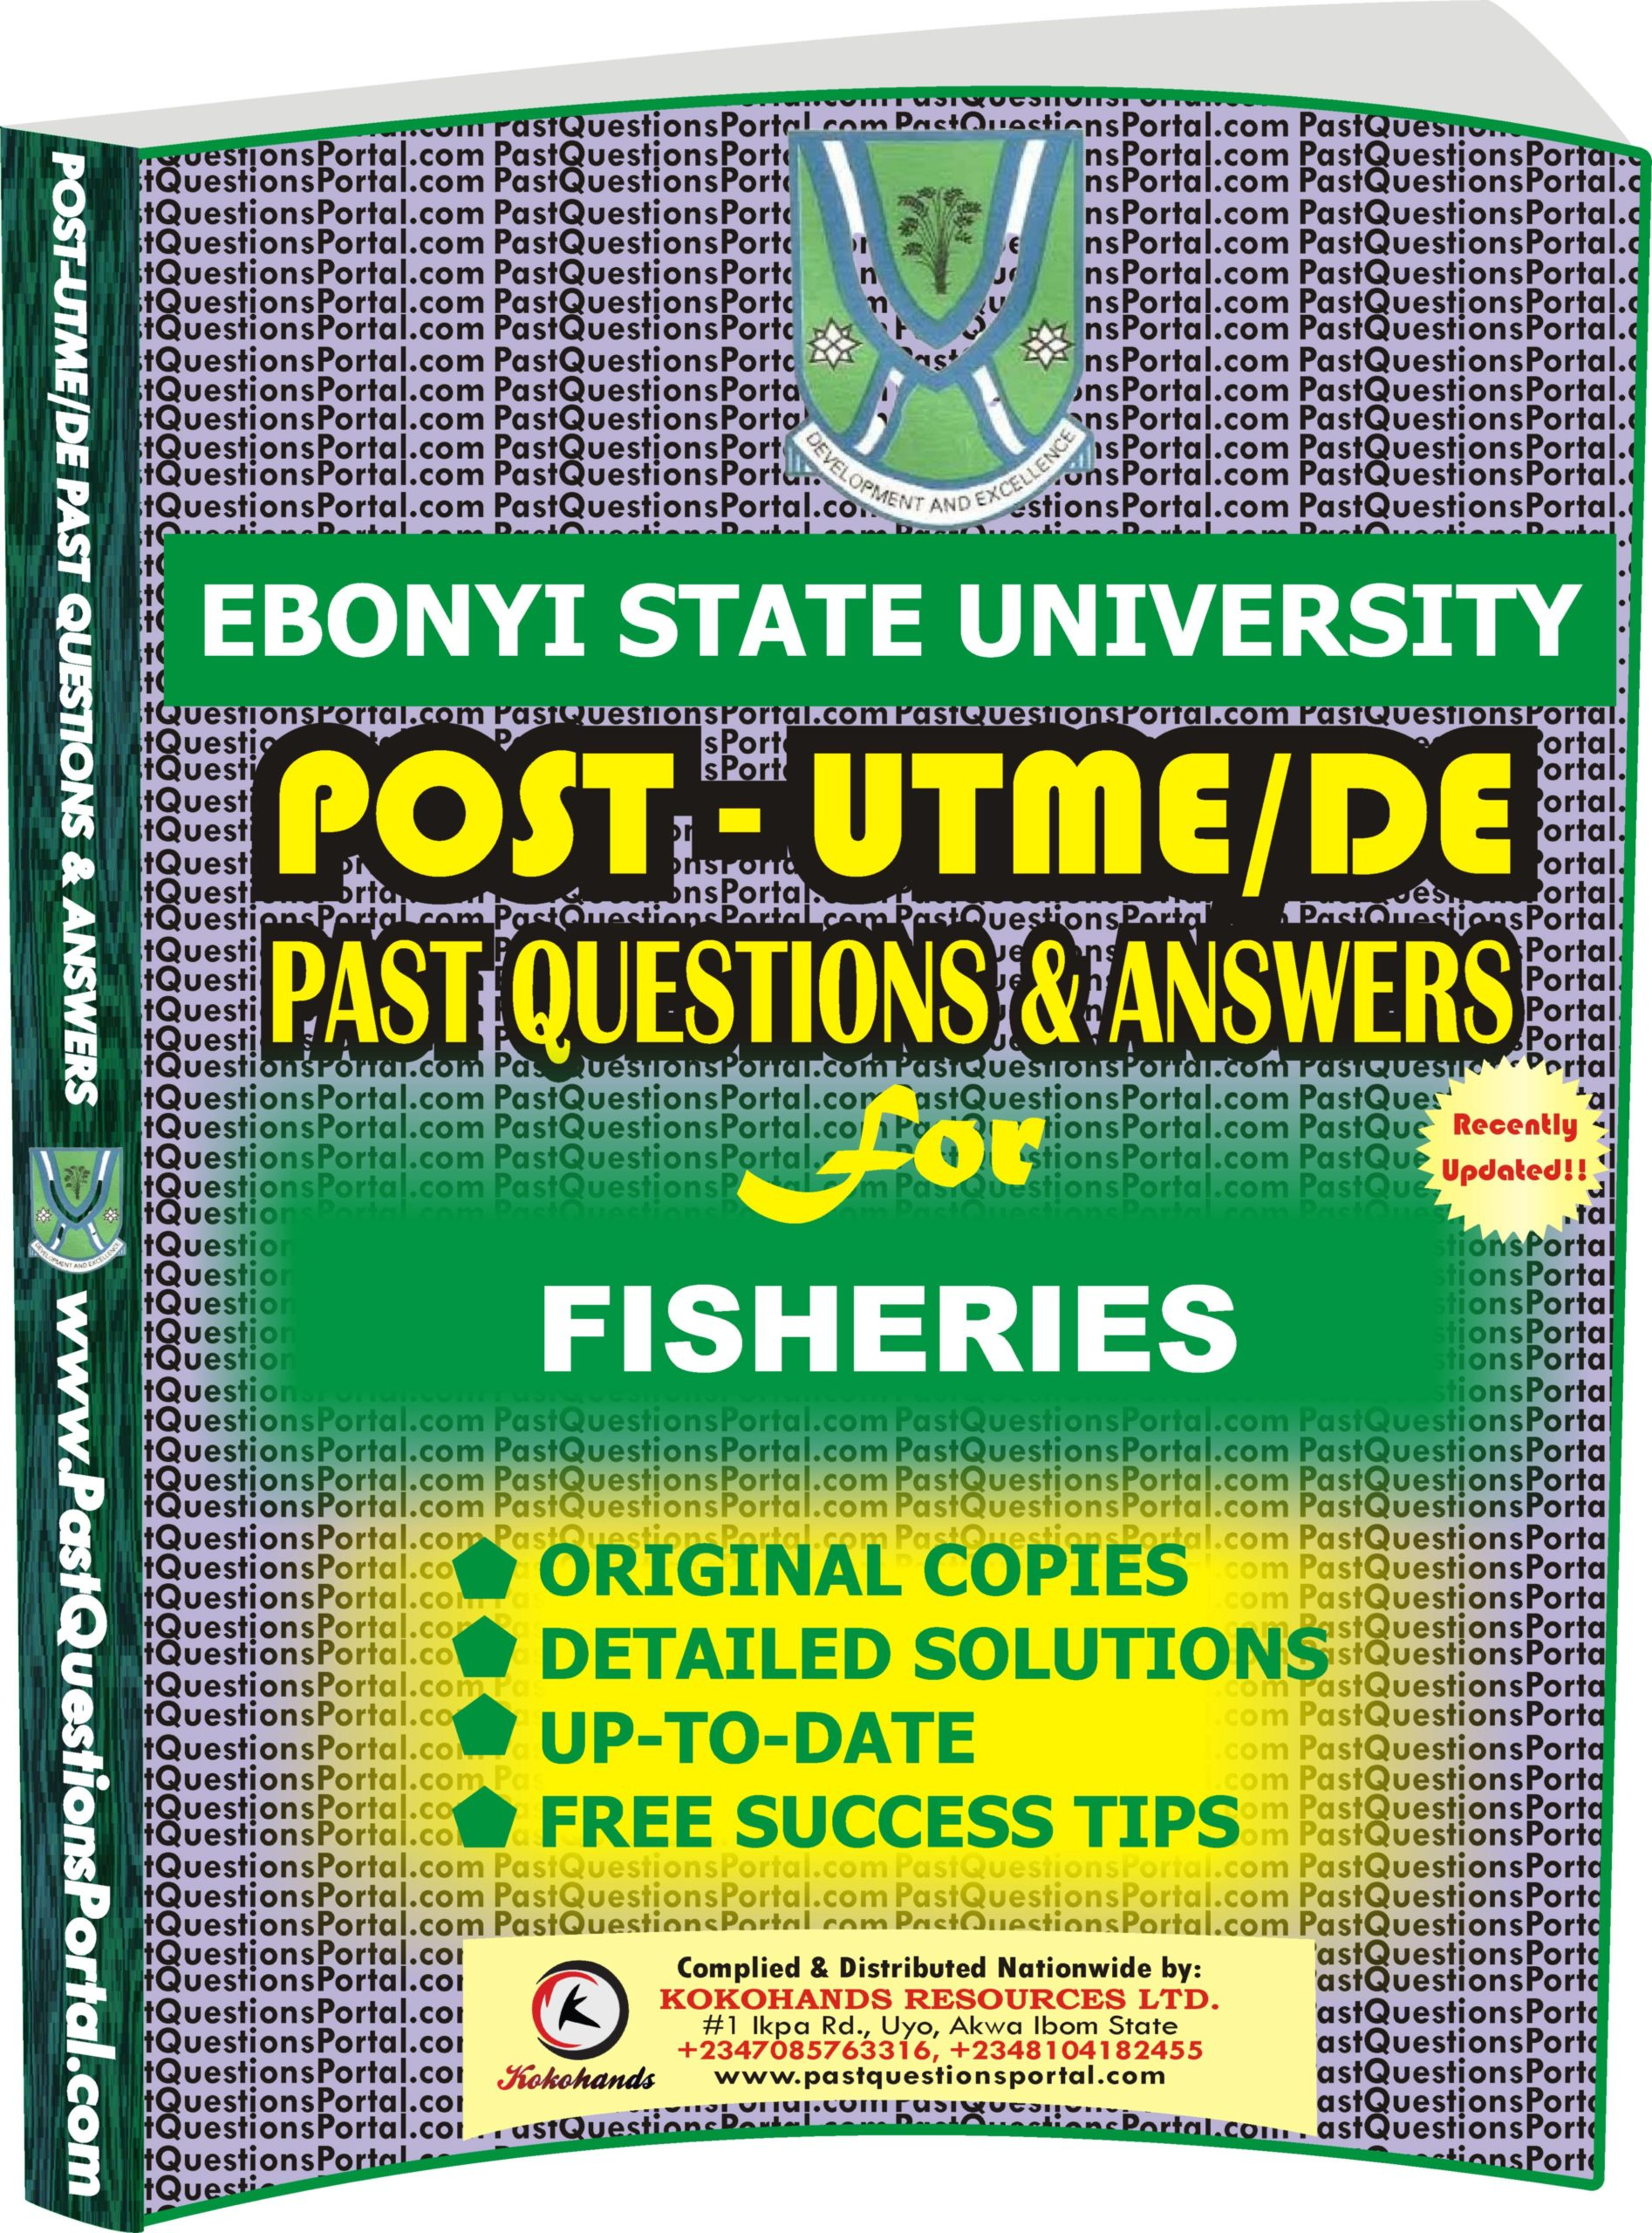 EBSU Post UTME Past Questions for FISHERIES